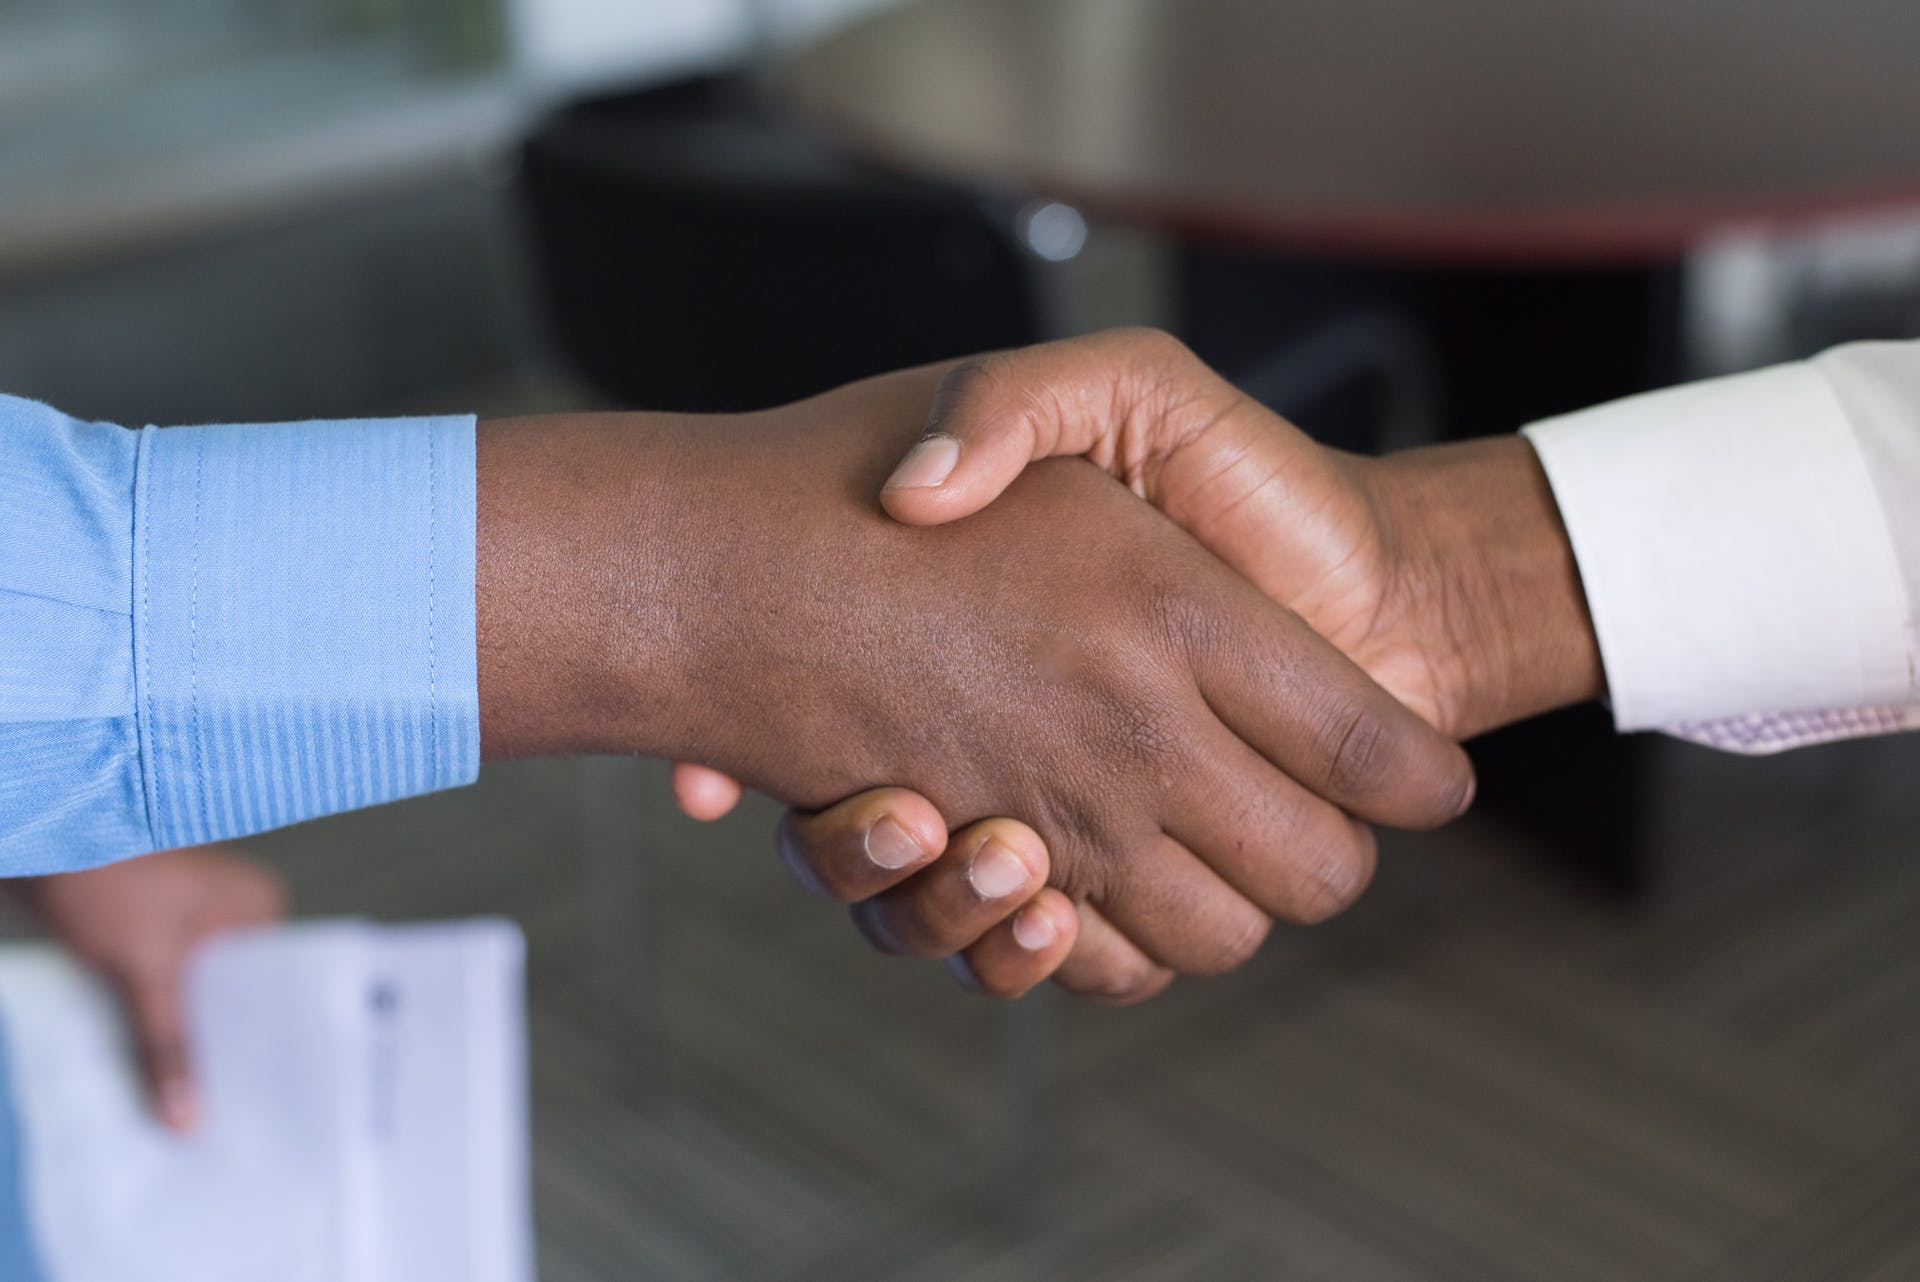 working corporate buying hands office deal black corporate attire selling handshake